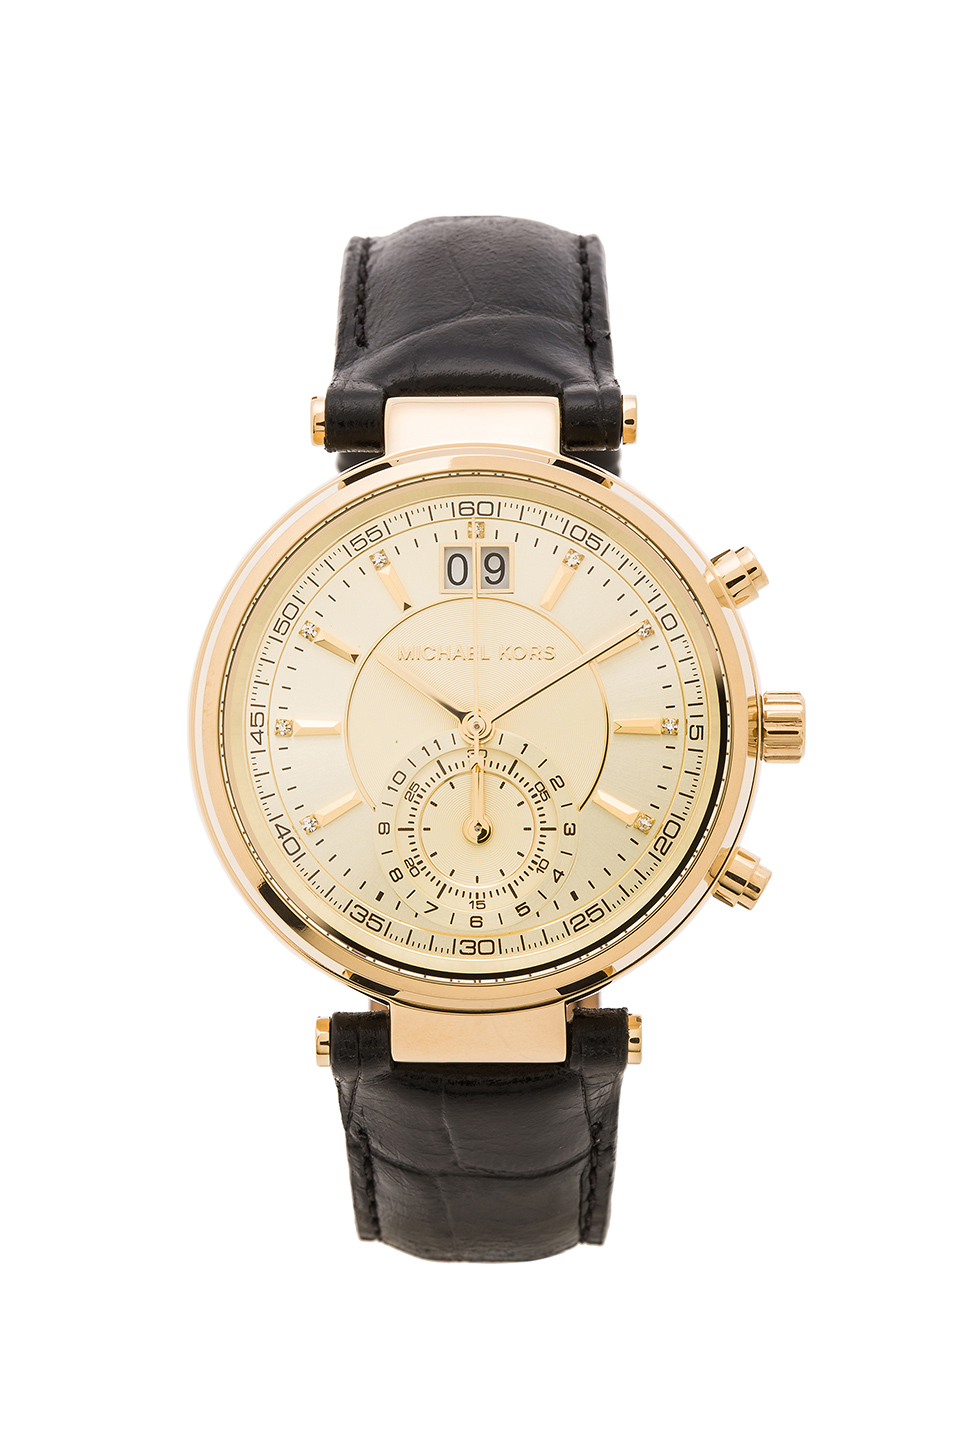 Michael Kors Sawyer Watch in Gold & Black